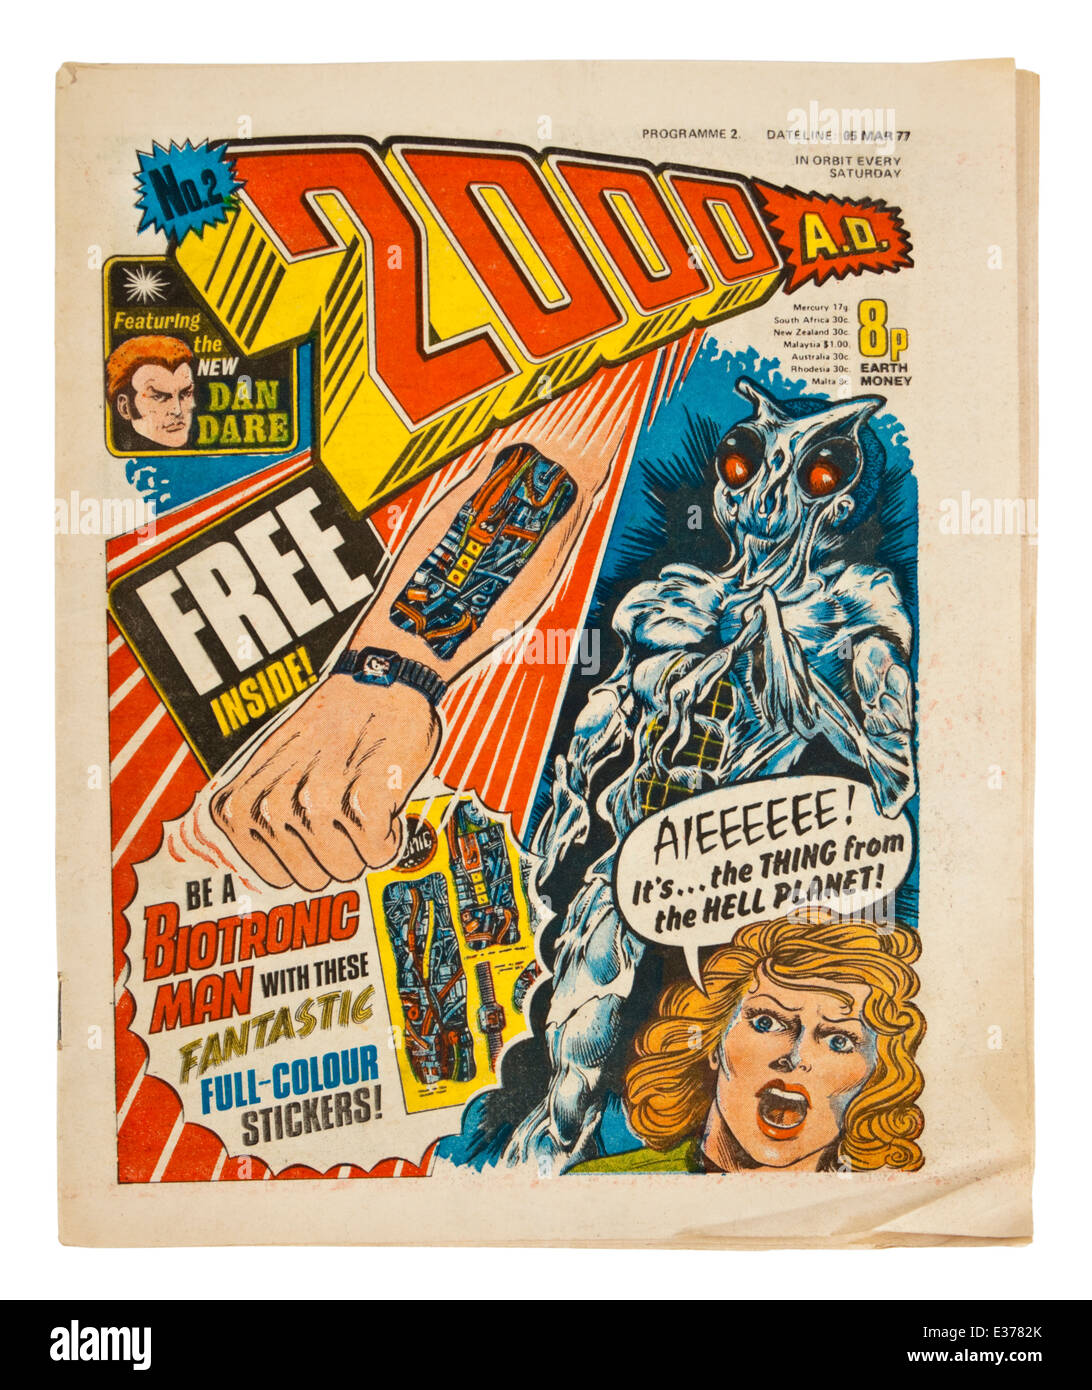 Early copy (No 2) of '2000 A.D.', the popular British weekly sci-fi comic from the 1970's, featuring - Stock Image